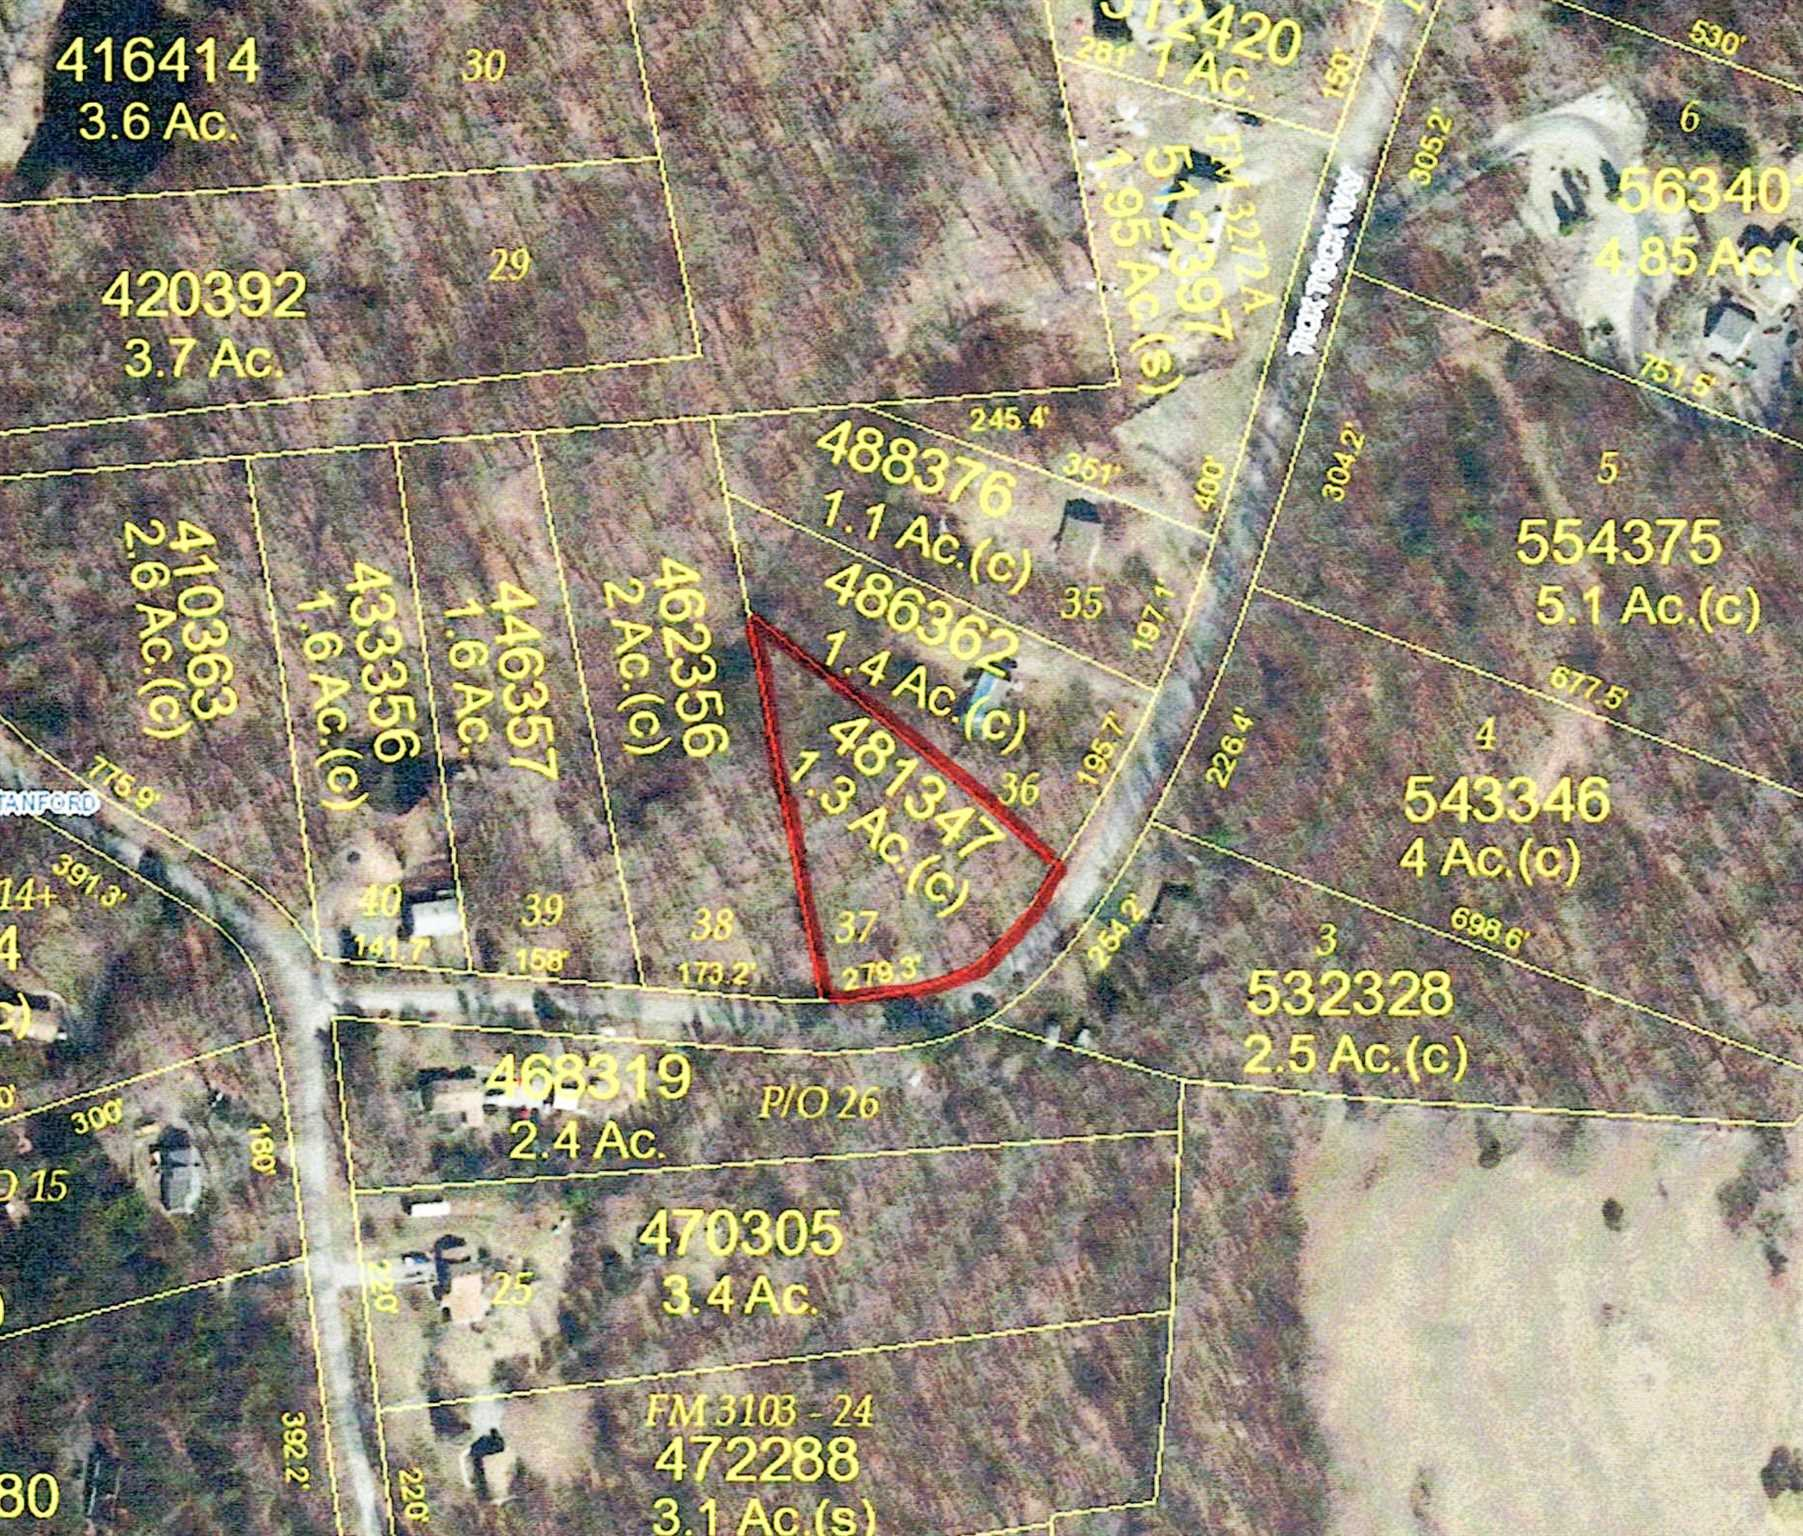 Land for Sale at 29 TICK TOCK WAY 29 TICK TOCK WAY Stanfordville, New York 12581 United States